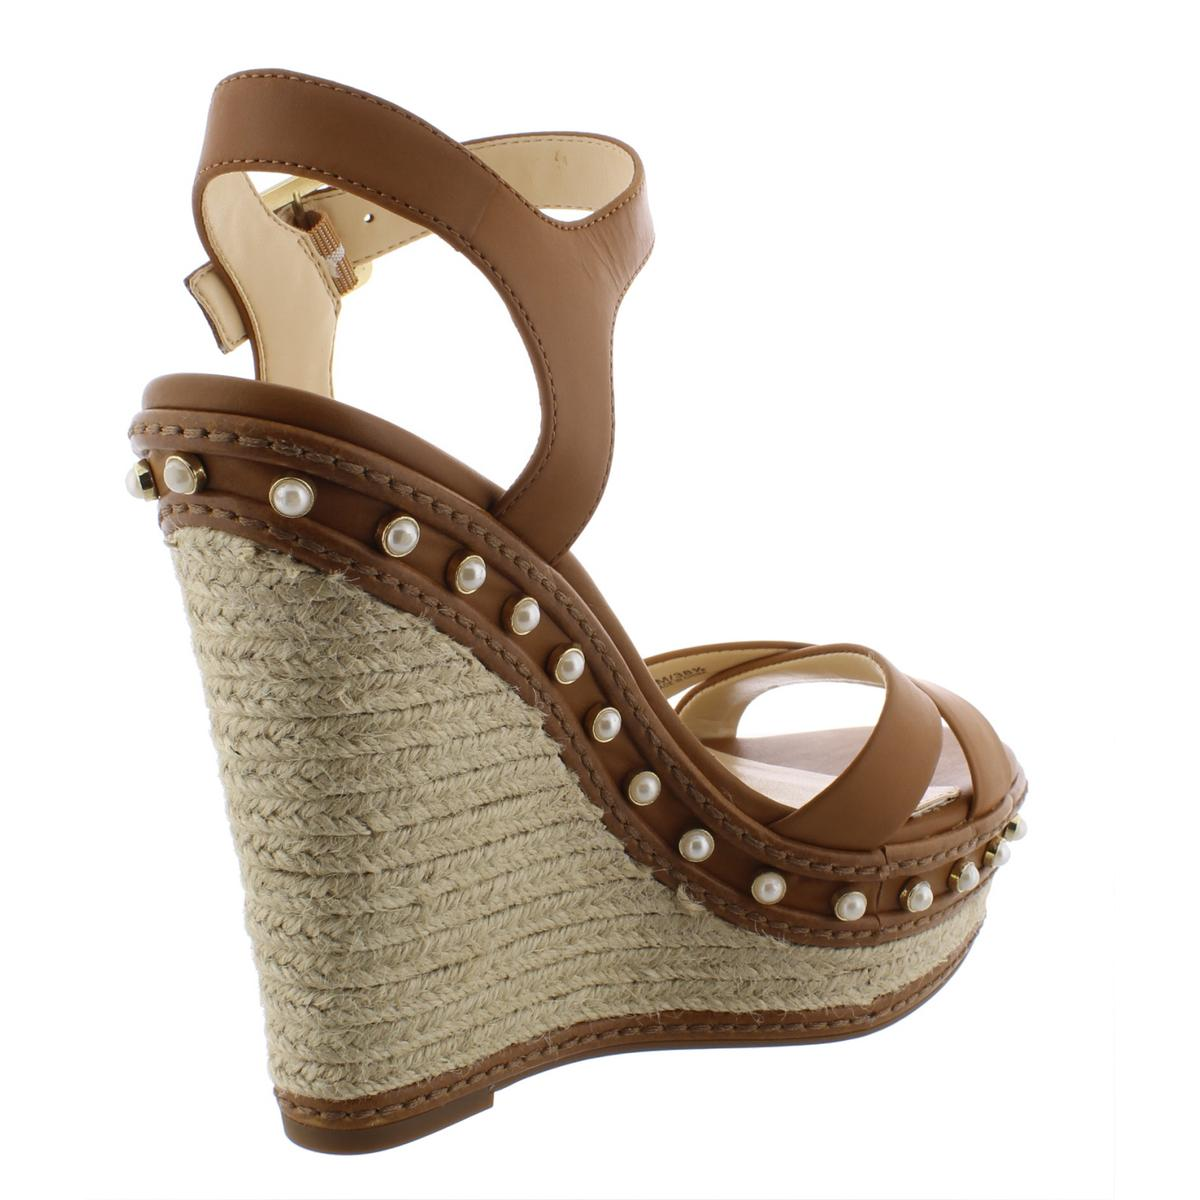 Jessica-Simpson-Womens-Aeralin-Leather-Espadrilles-Wedges-Shoes-BHFO-6006 thumbnail 6